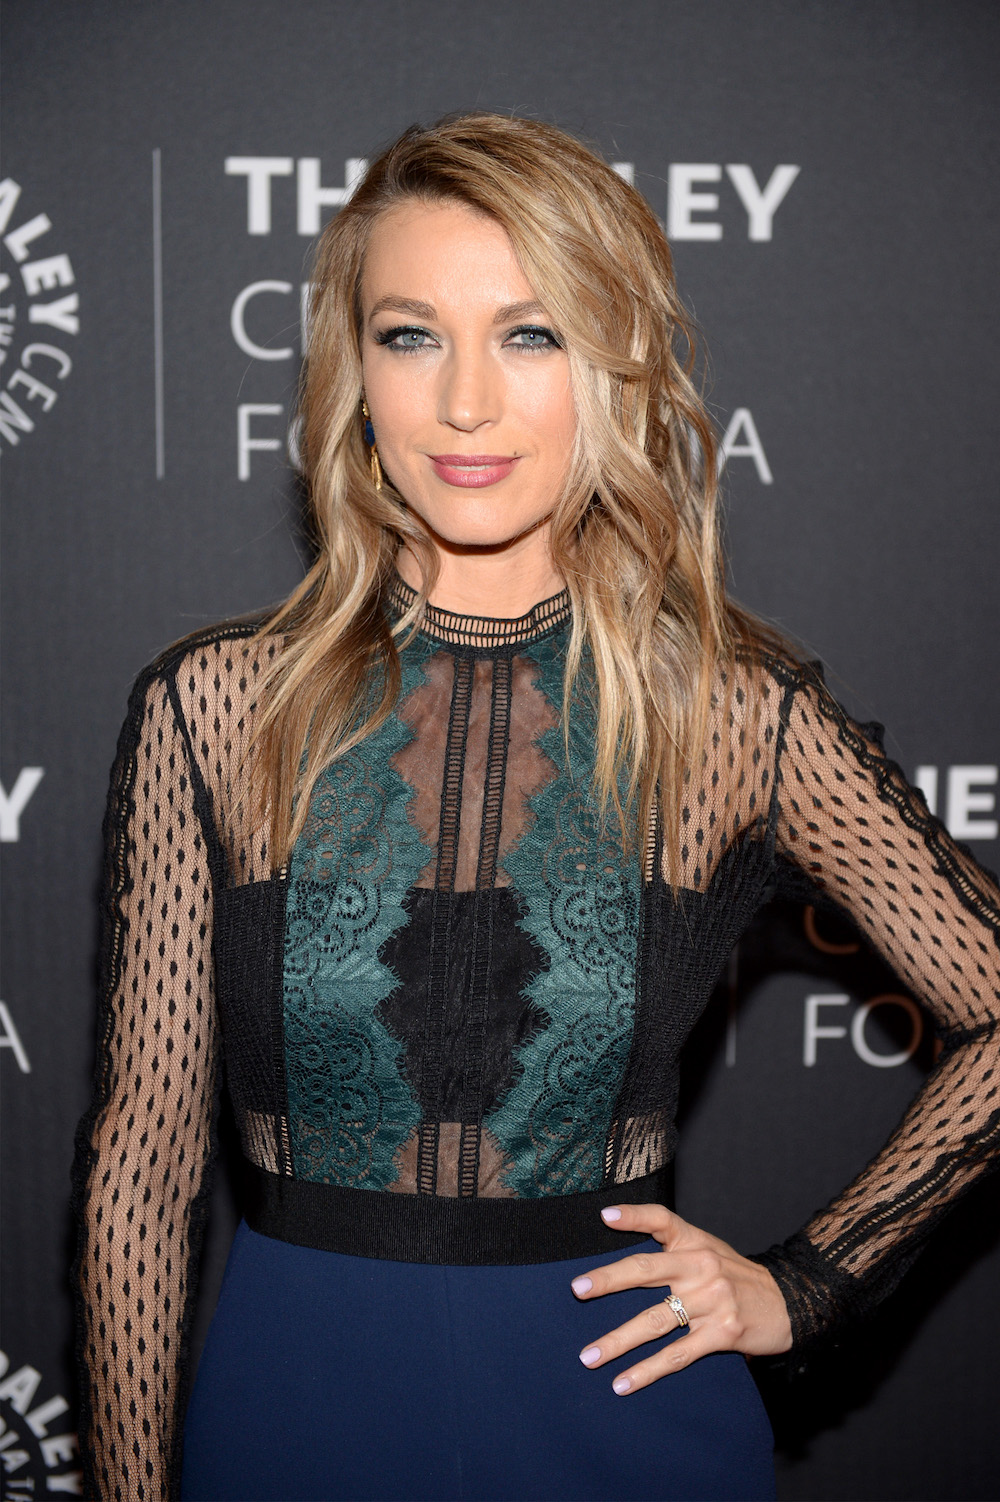 """Natalie Zea attends """"The Detour"""" season 2 screening at The Paley Center for Media in New York City"""